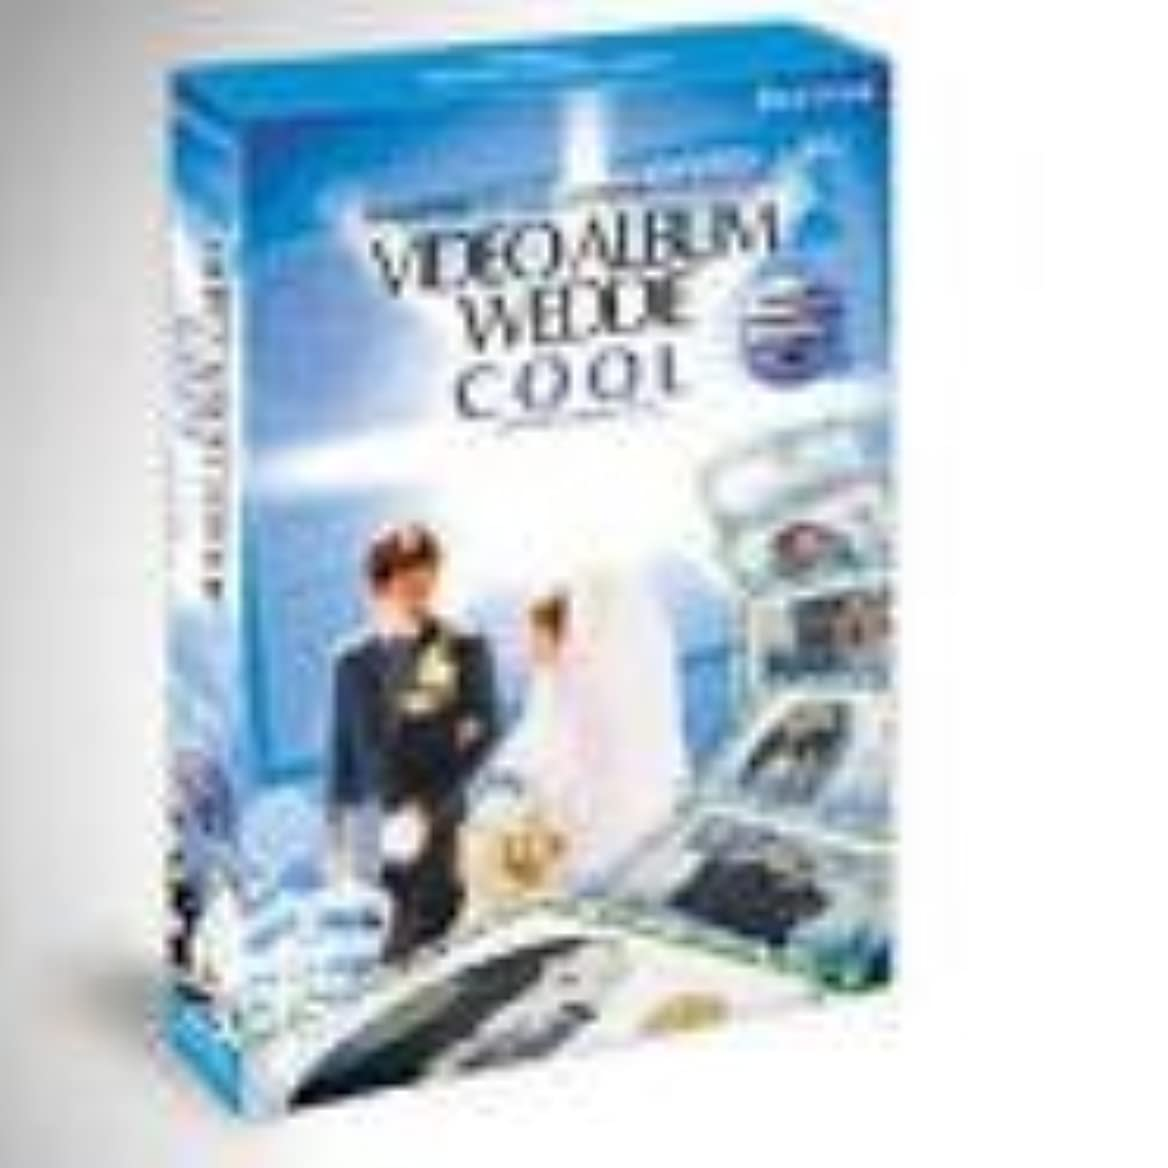 Video Album Weddie Cool